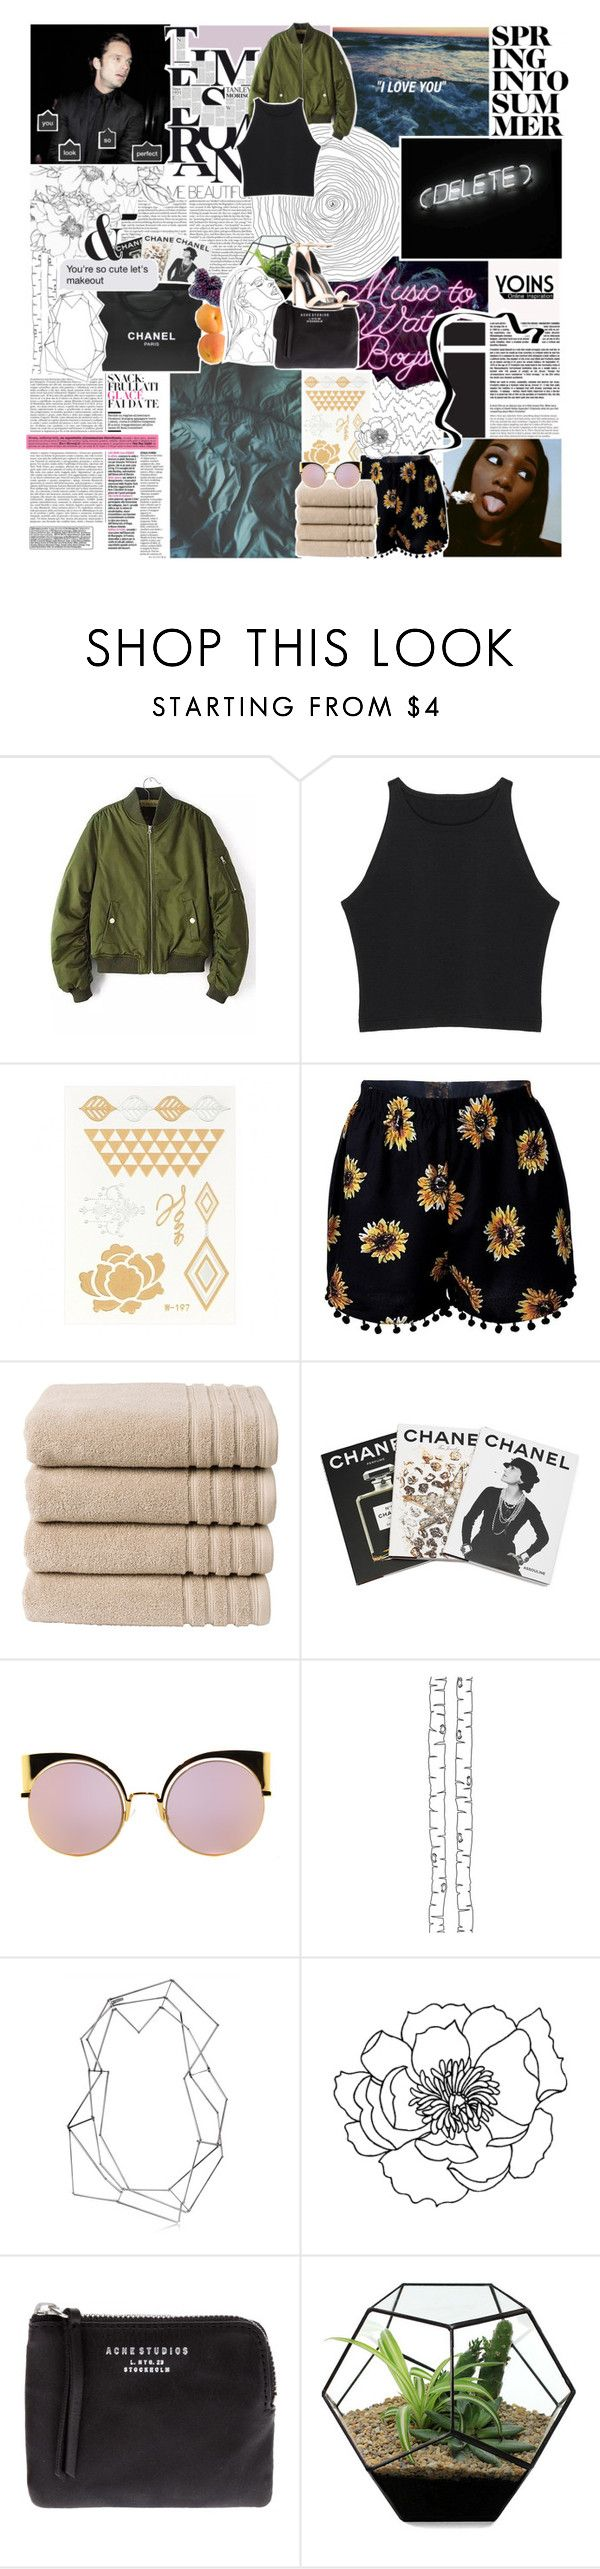 """if ever our love was concealed ; yoins"" by oreokk22 ❤ liked on Polyvore featuring Sebastian Professional, Christy, Assouline Publishing, Fendi, Chanel, ferm LIVING, BANCI GIOIELLI, Acne Studios, Tom Ford and yoins"